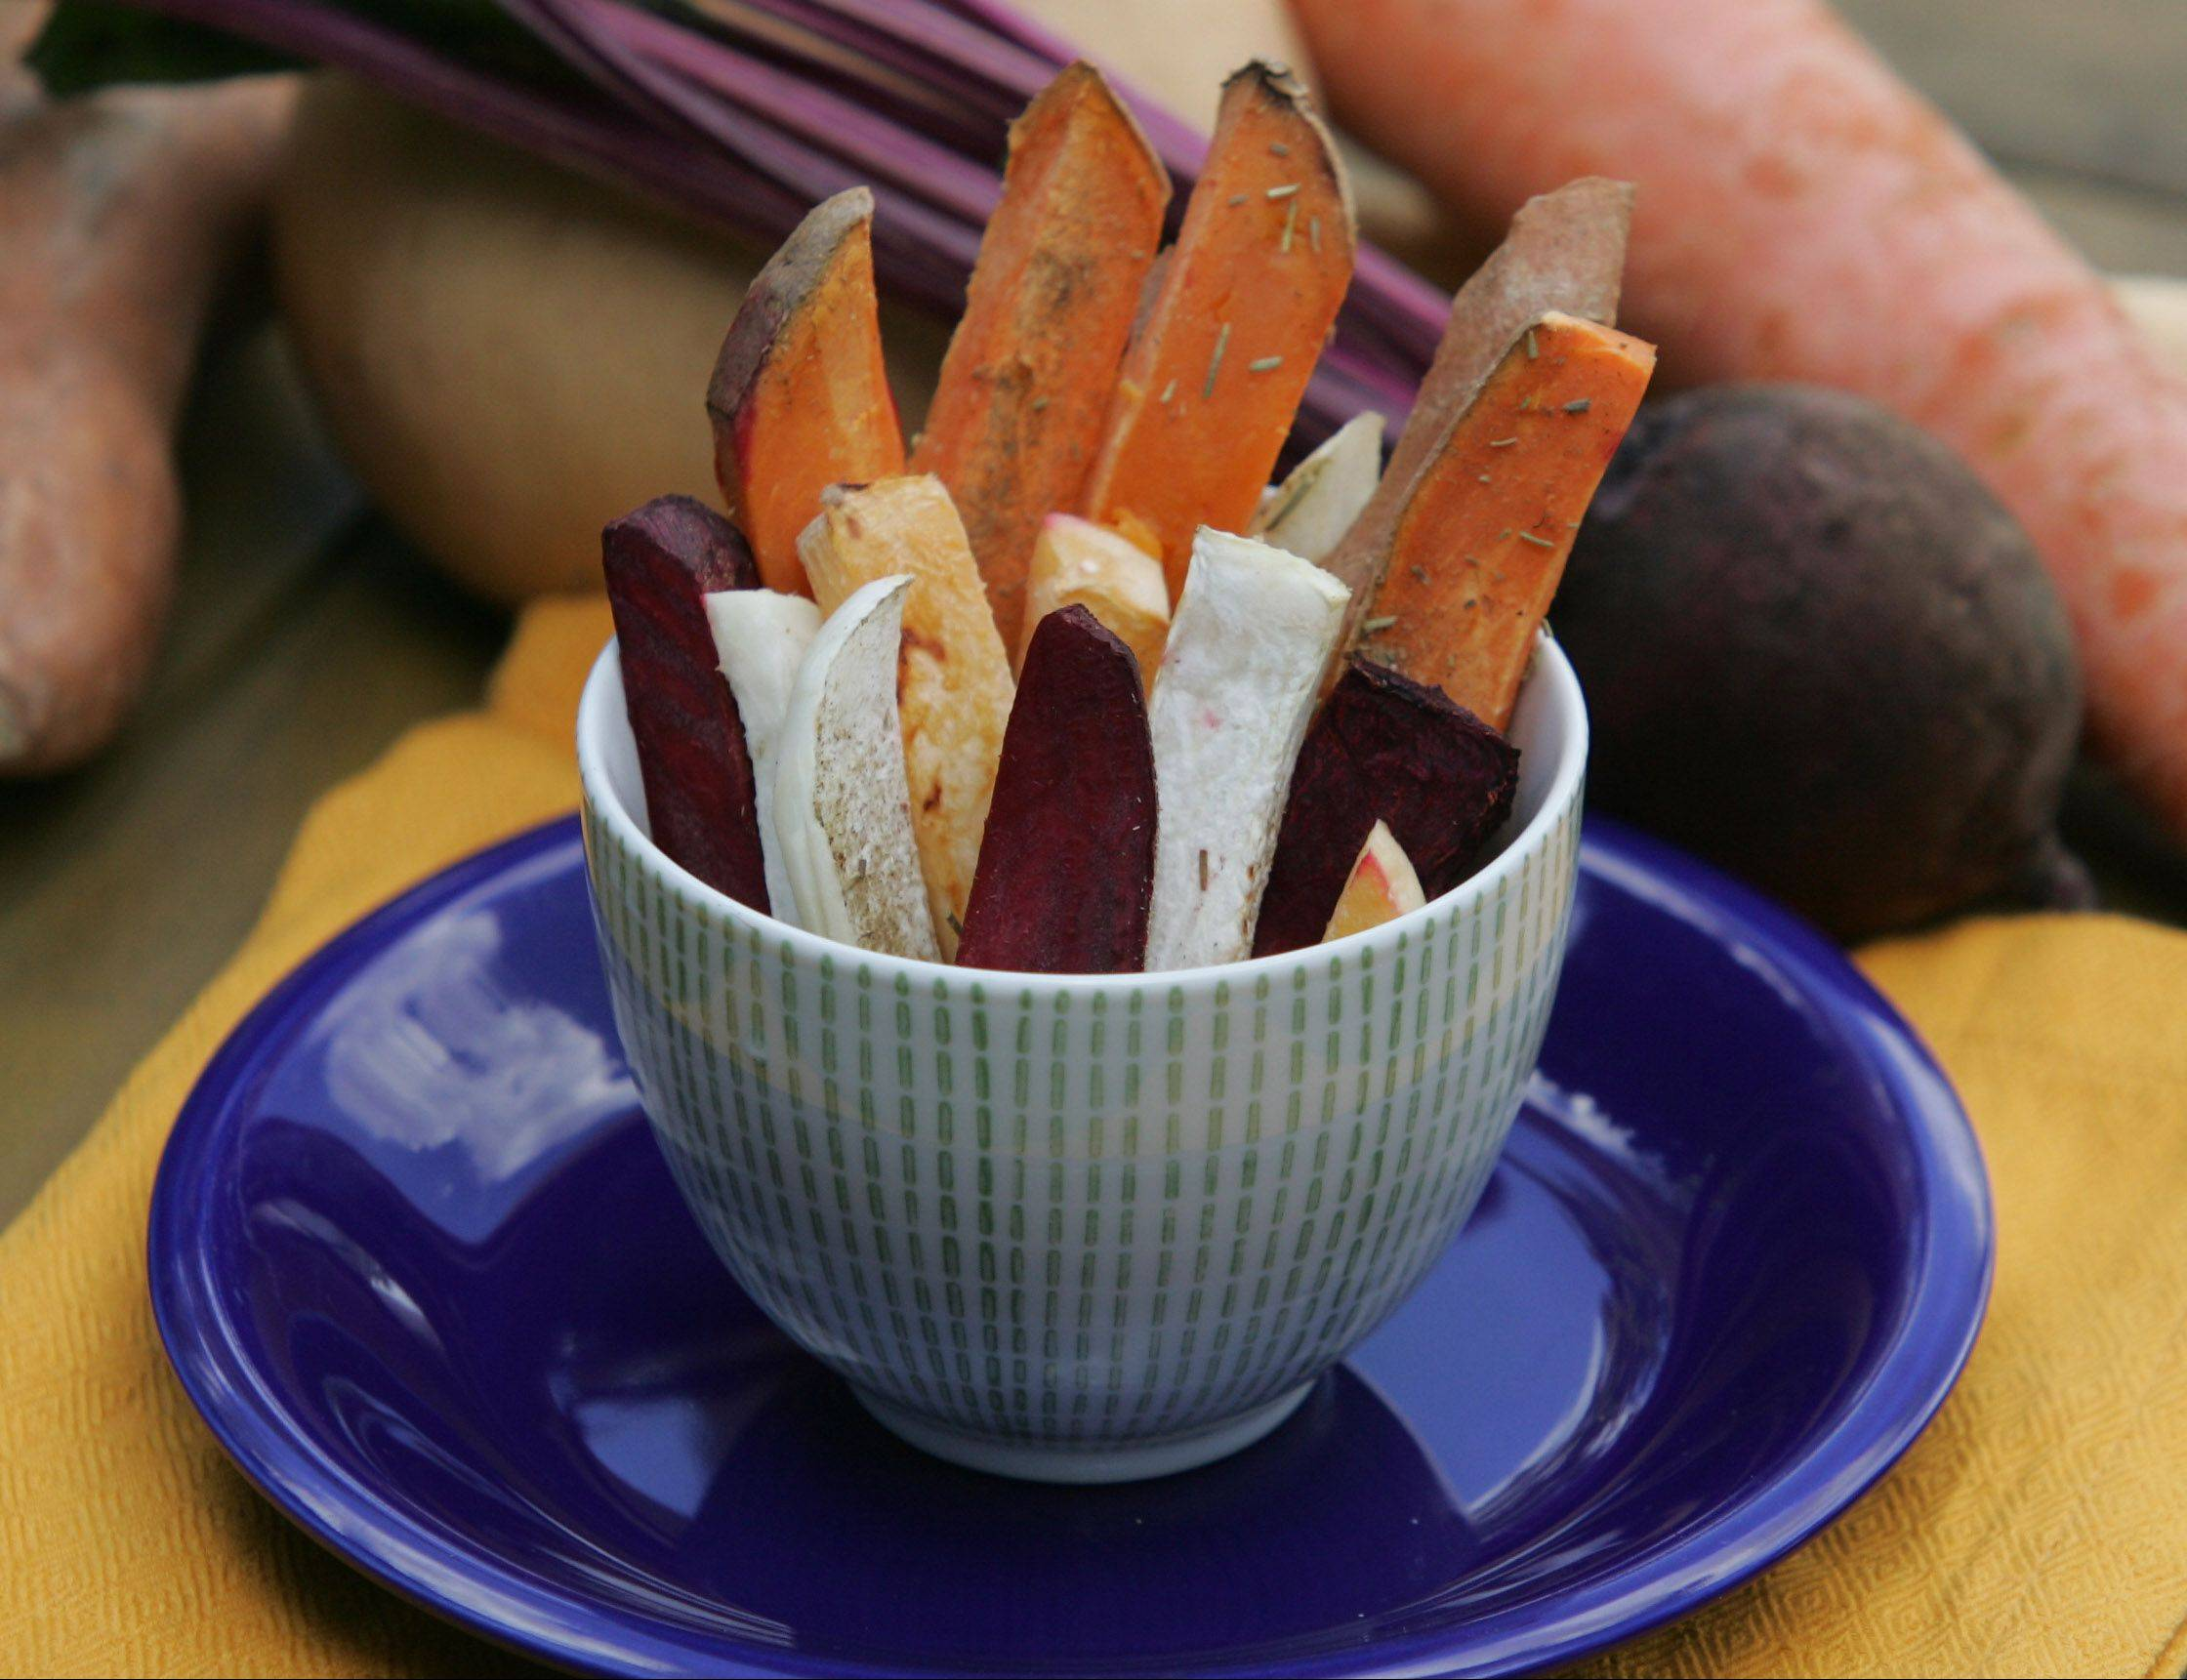 Try these roasted root vegetable fries along side a lean steak or baked chicken.